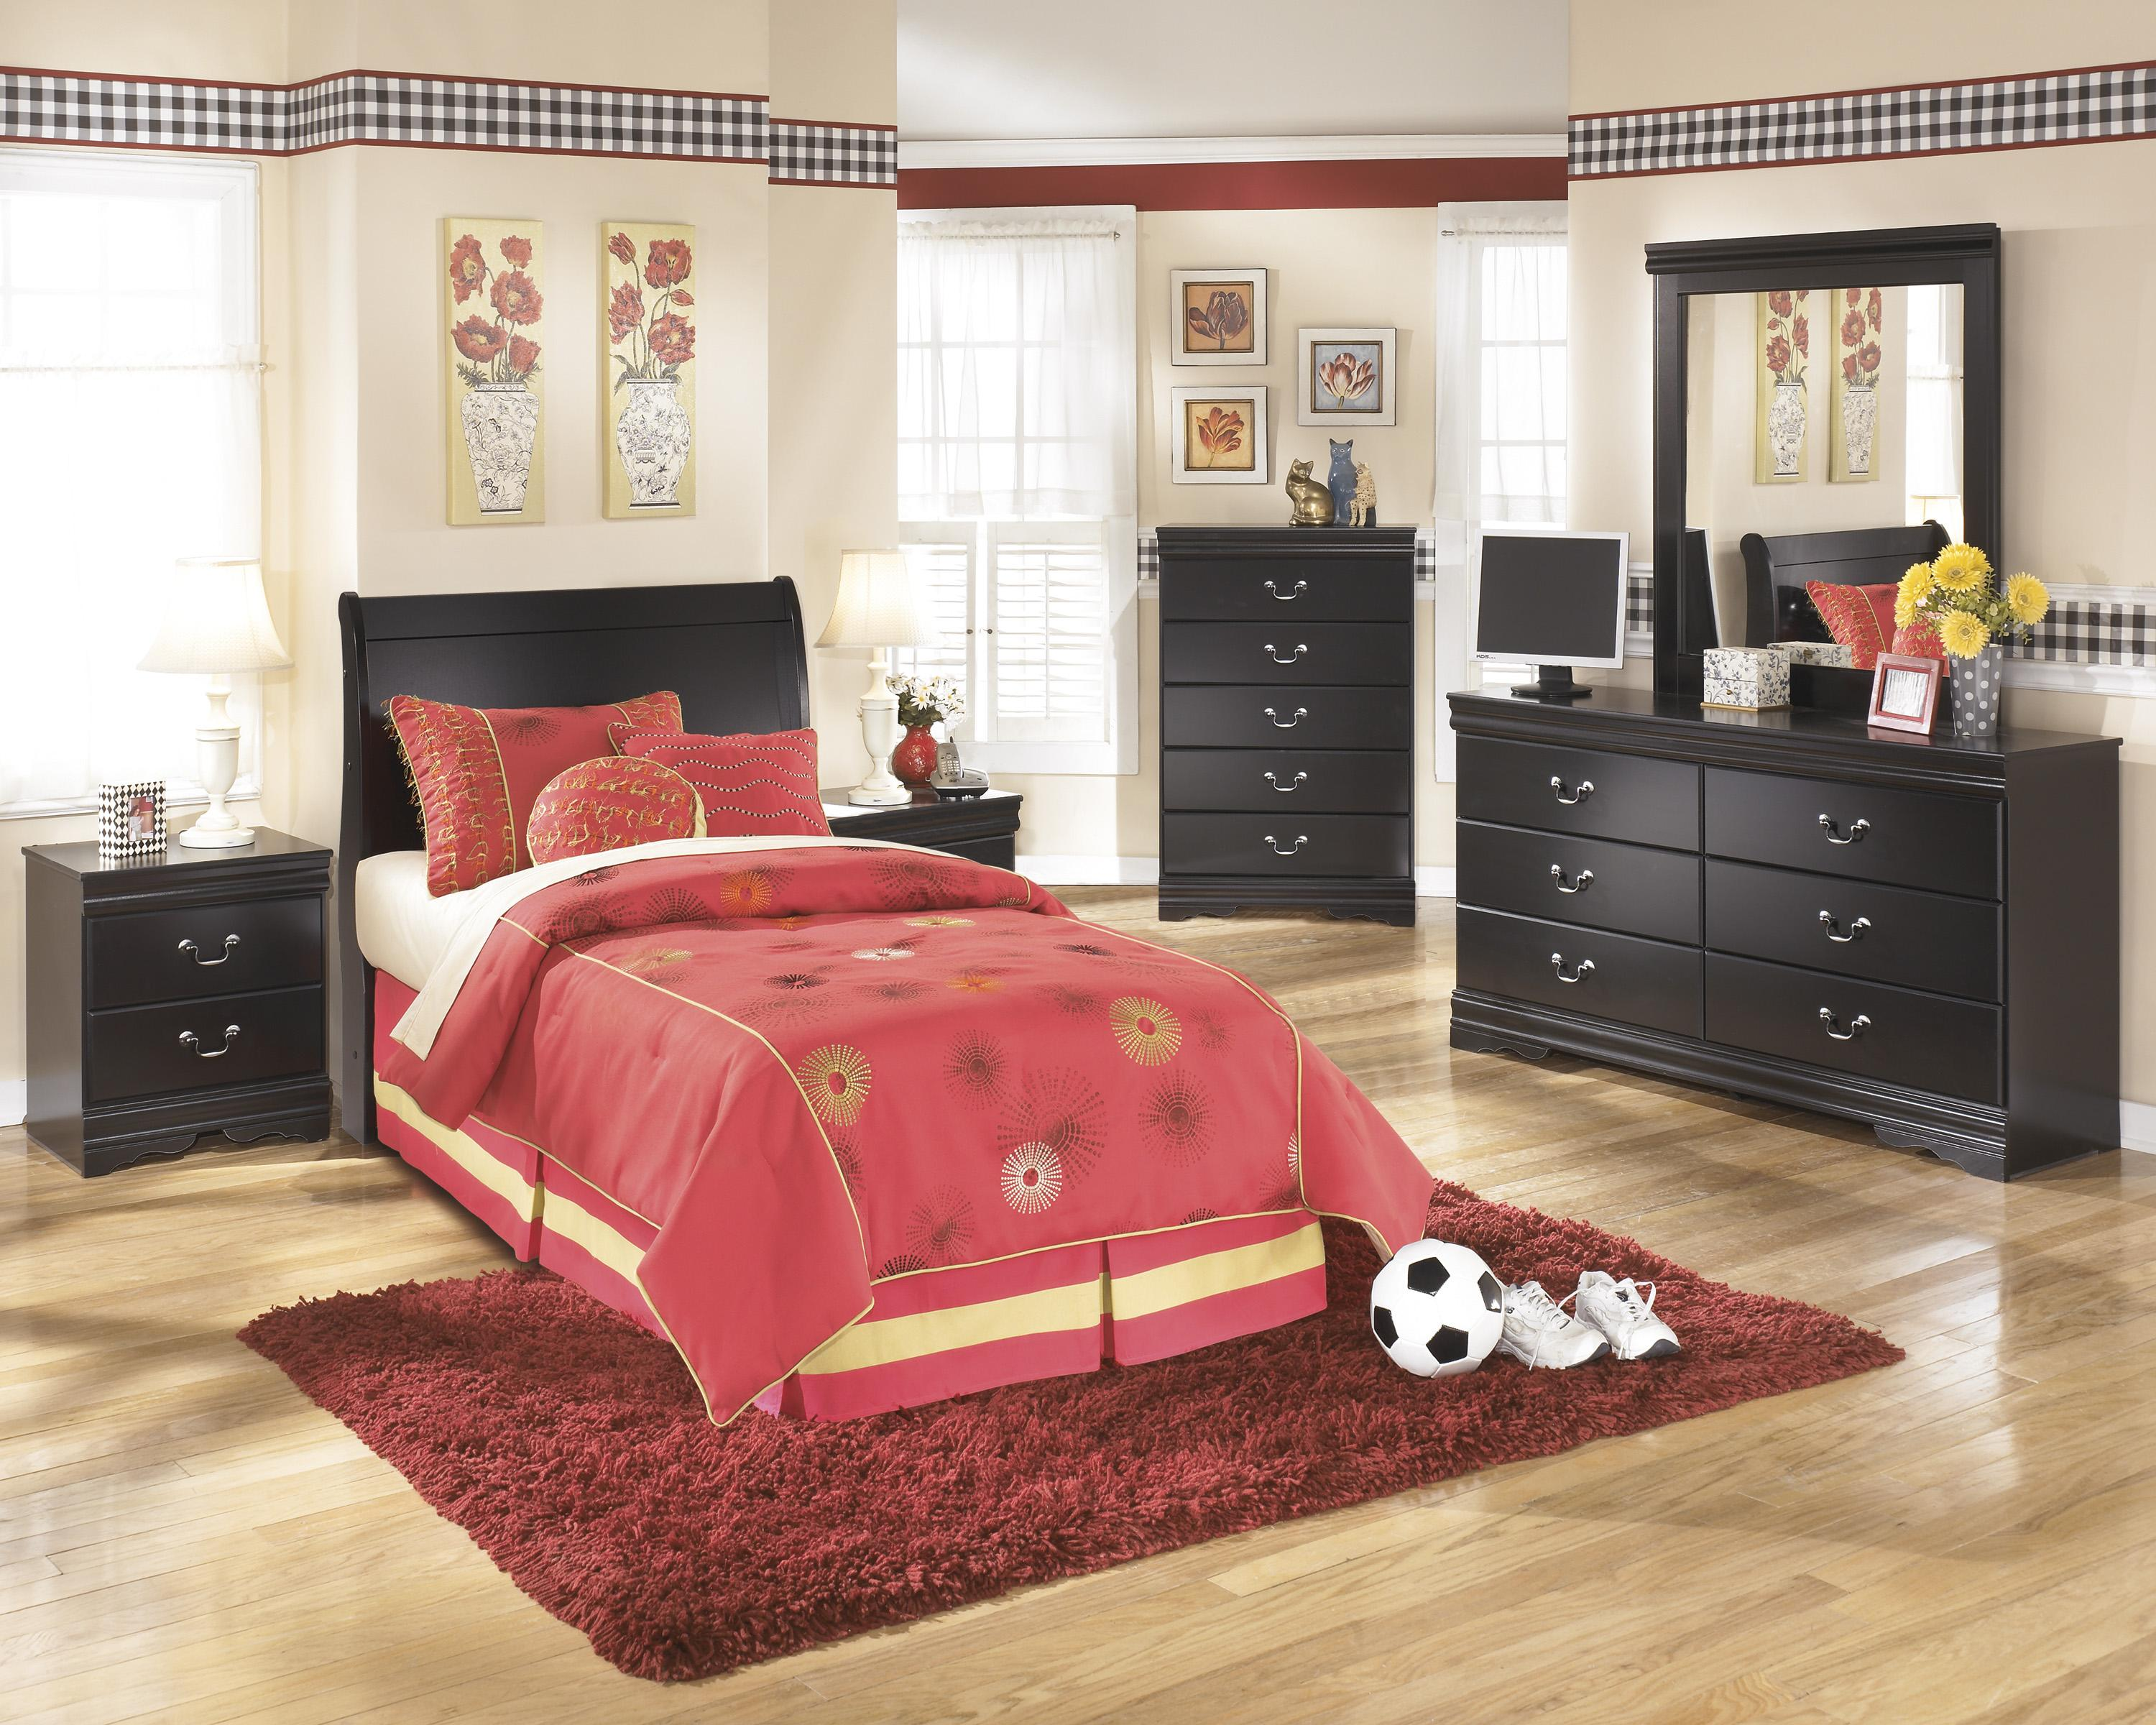 Signature Design by Ashley Huey Vineyard Twin Bedroom Group - Item Number: B128 T Bedroom Group 2